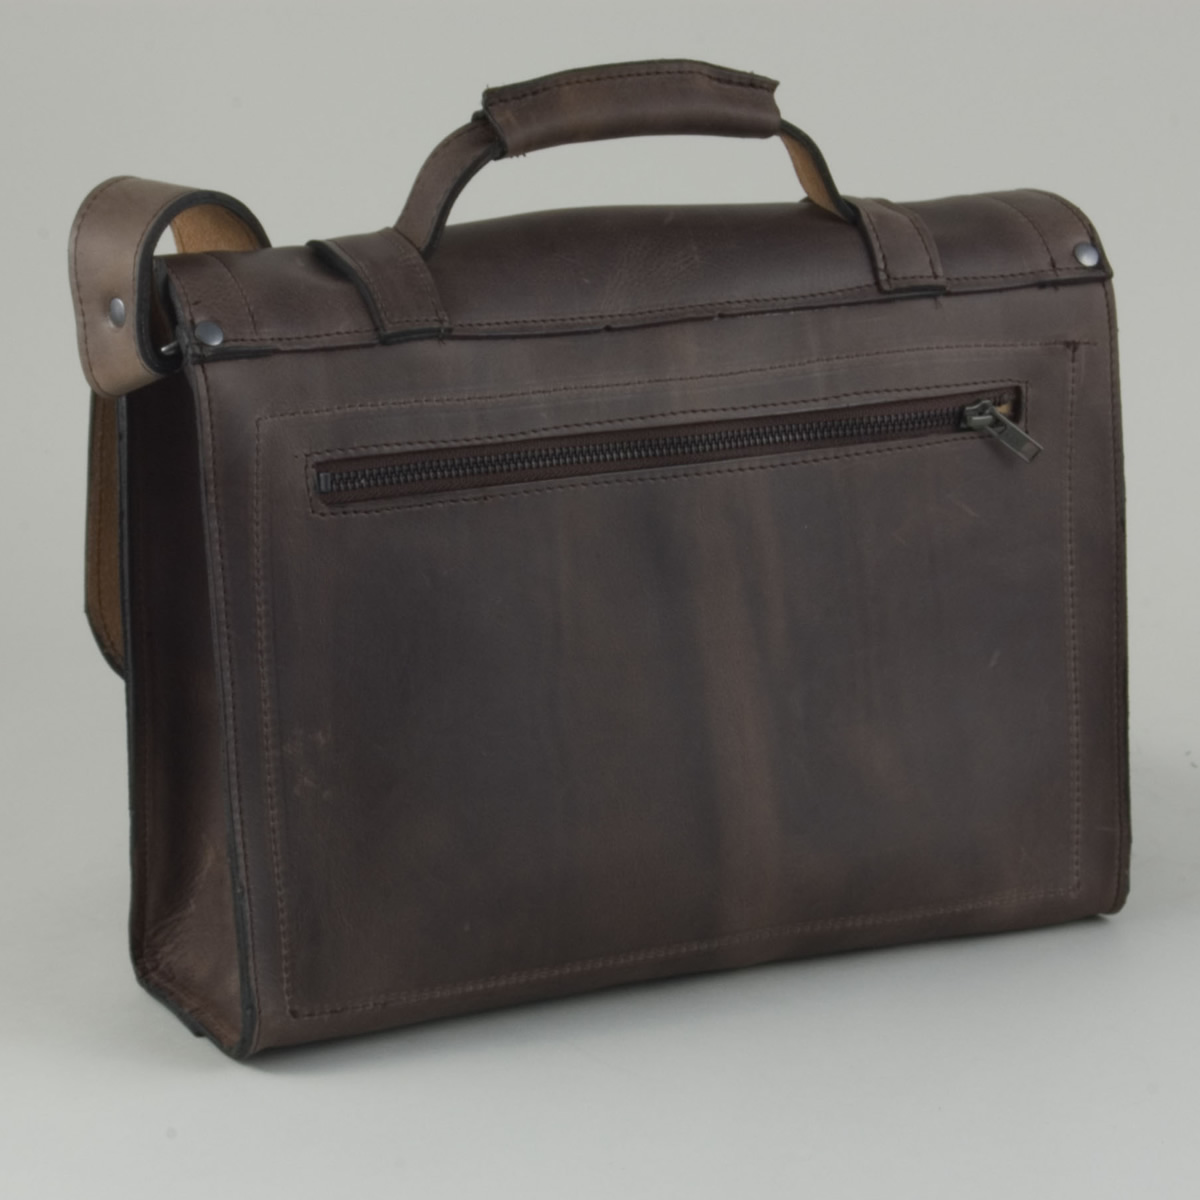 The Small Satchel - Back